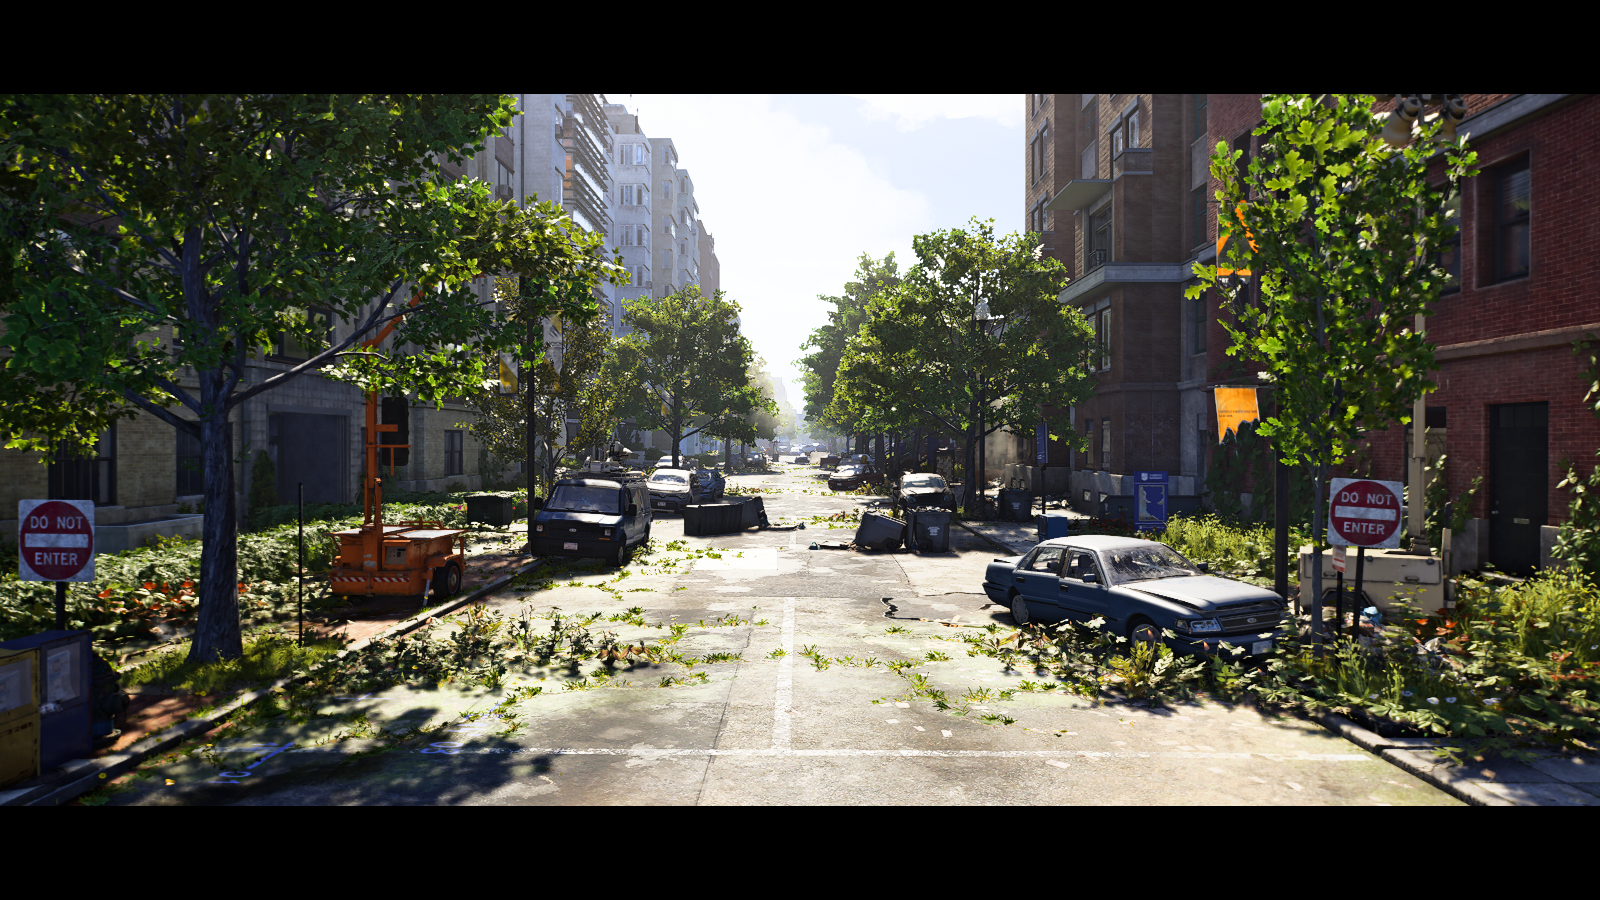 Tom Clancy's The Division 2_20190818_151218.png - Tom Clancy's The Division 2